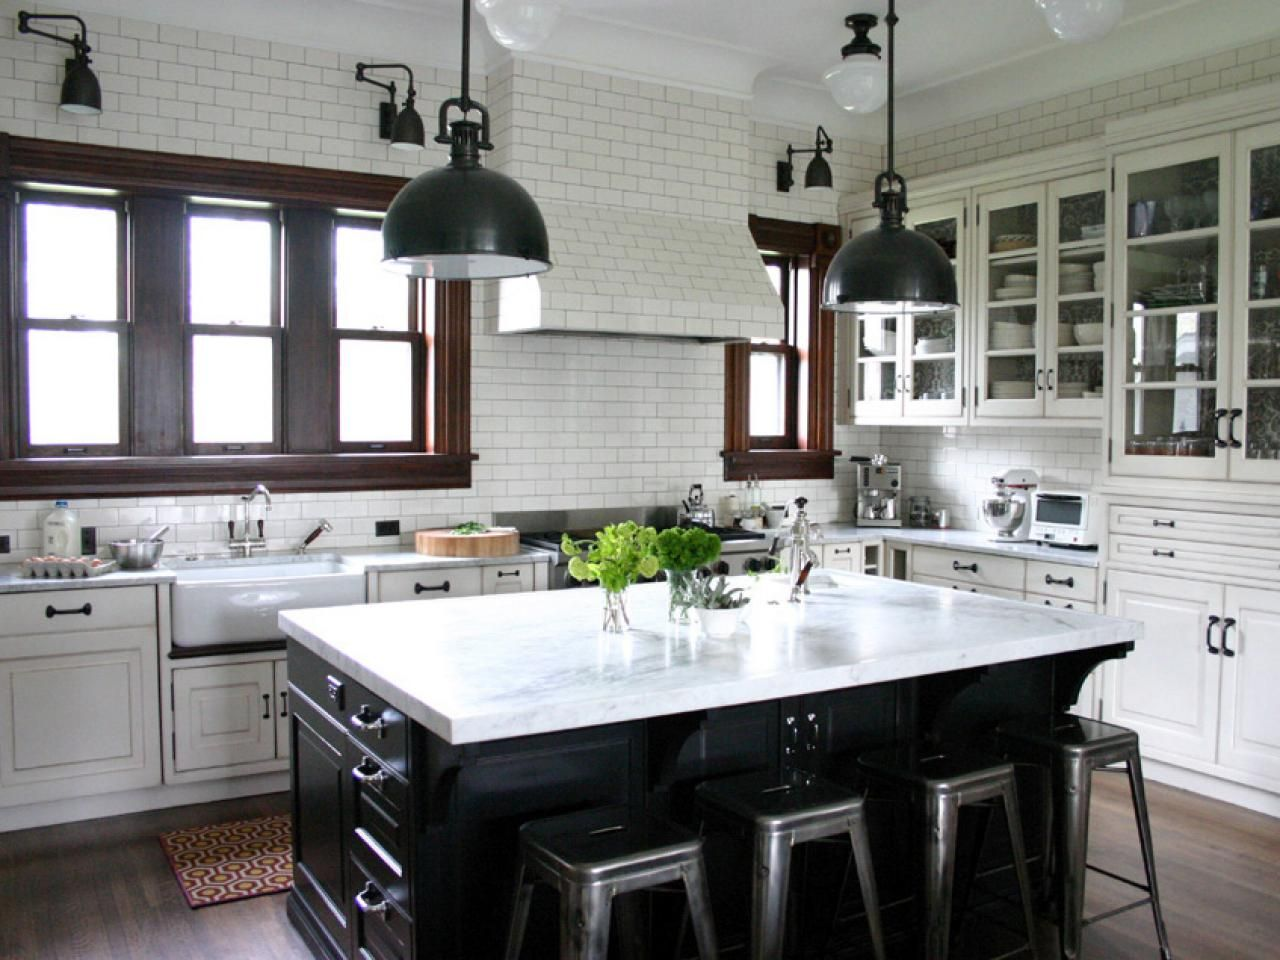 Kitchen Style Guide  Home White Kitchens And Dream Kitchens Adorable Kitchen Styles Designs Design Ideas